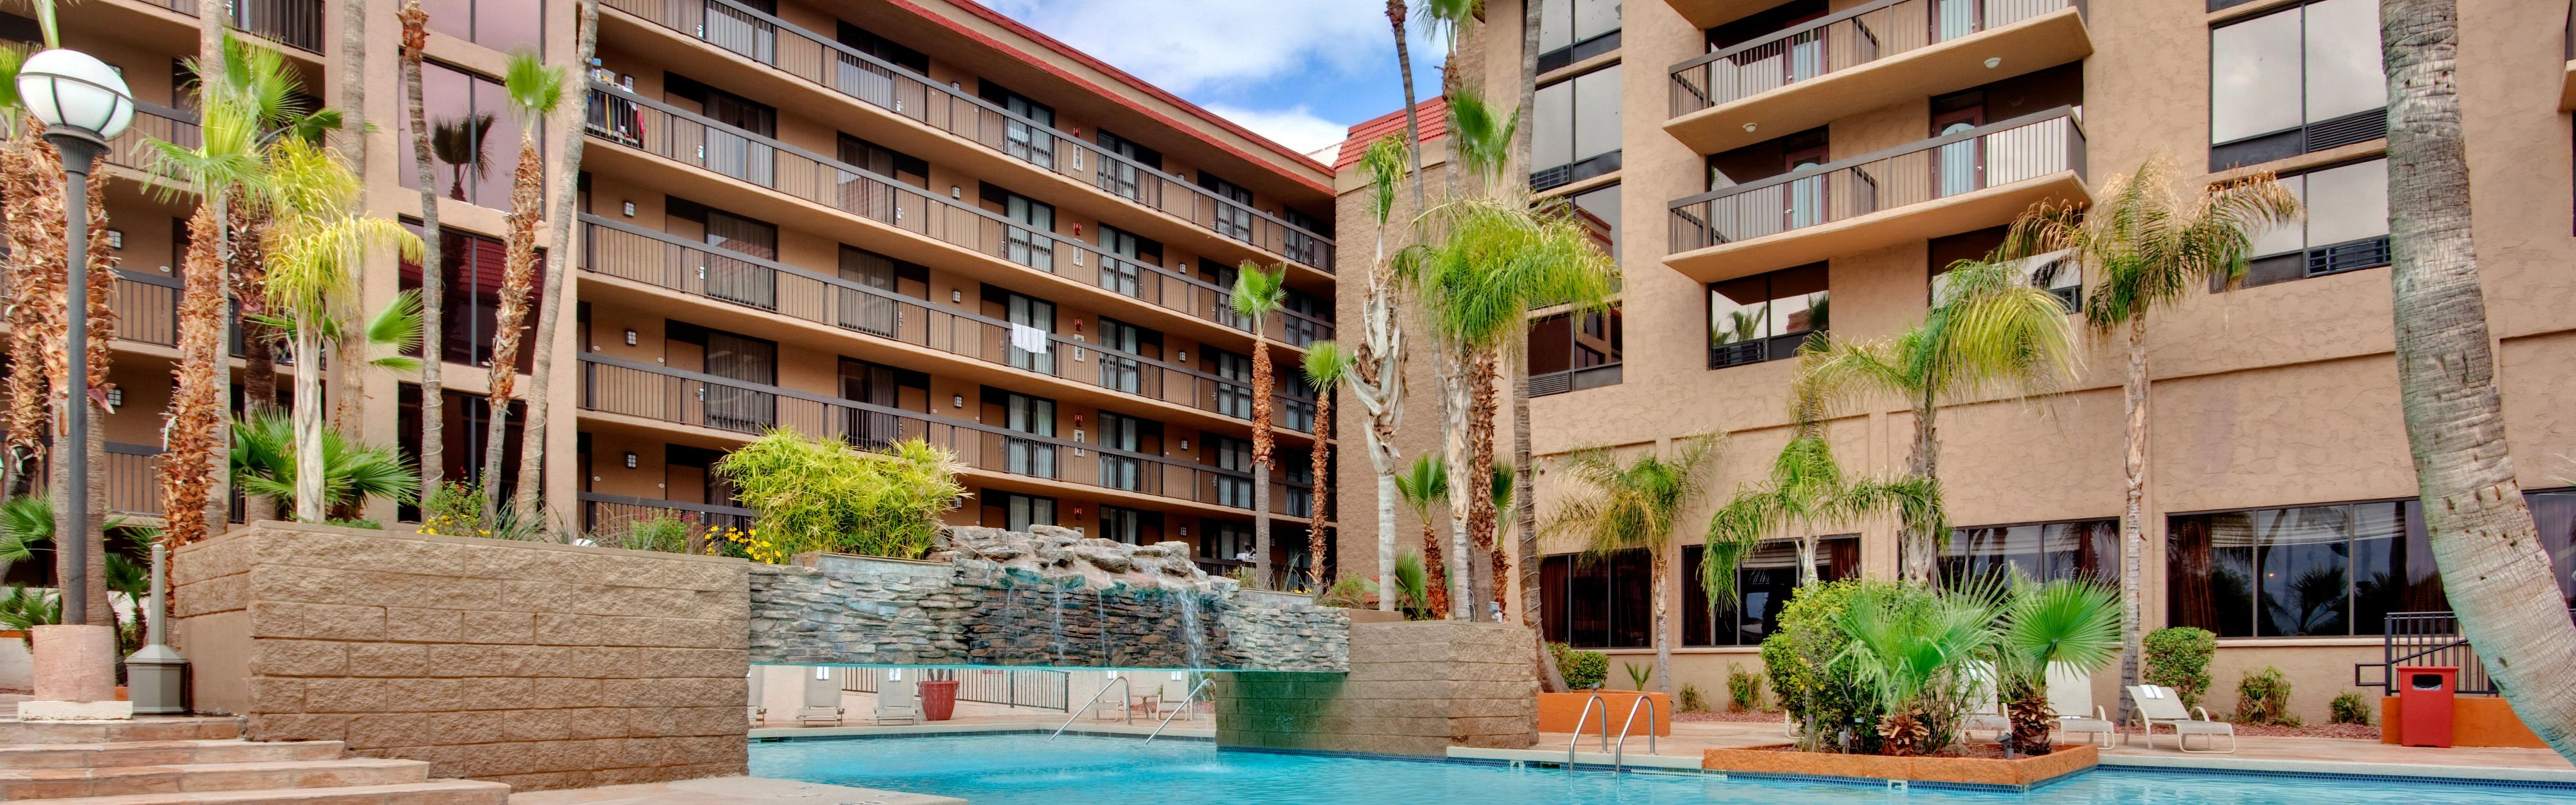 holiday inn suites phoenix mesachandler mesa arizona az localdatabasecom